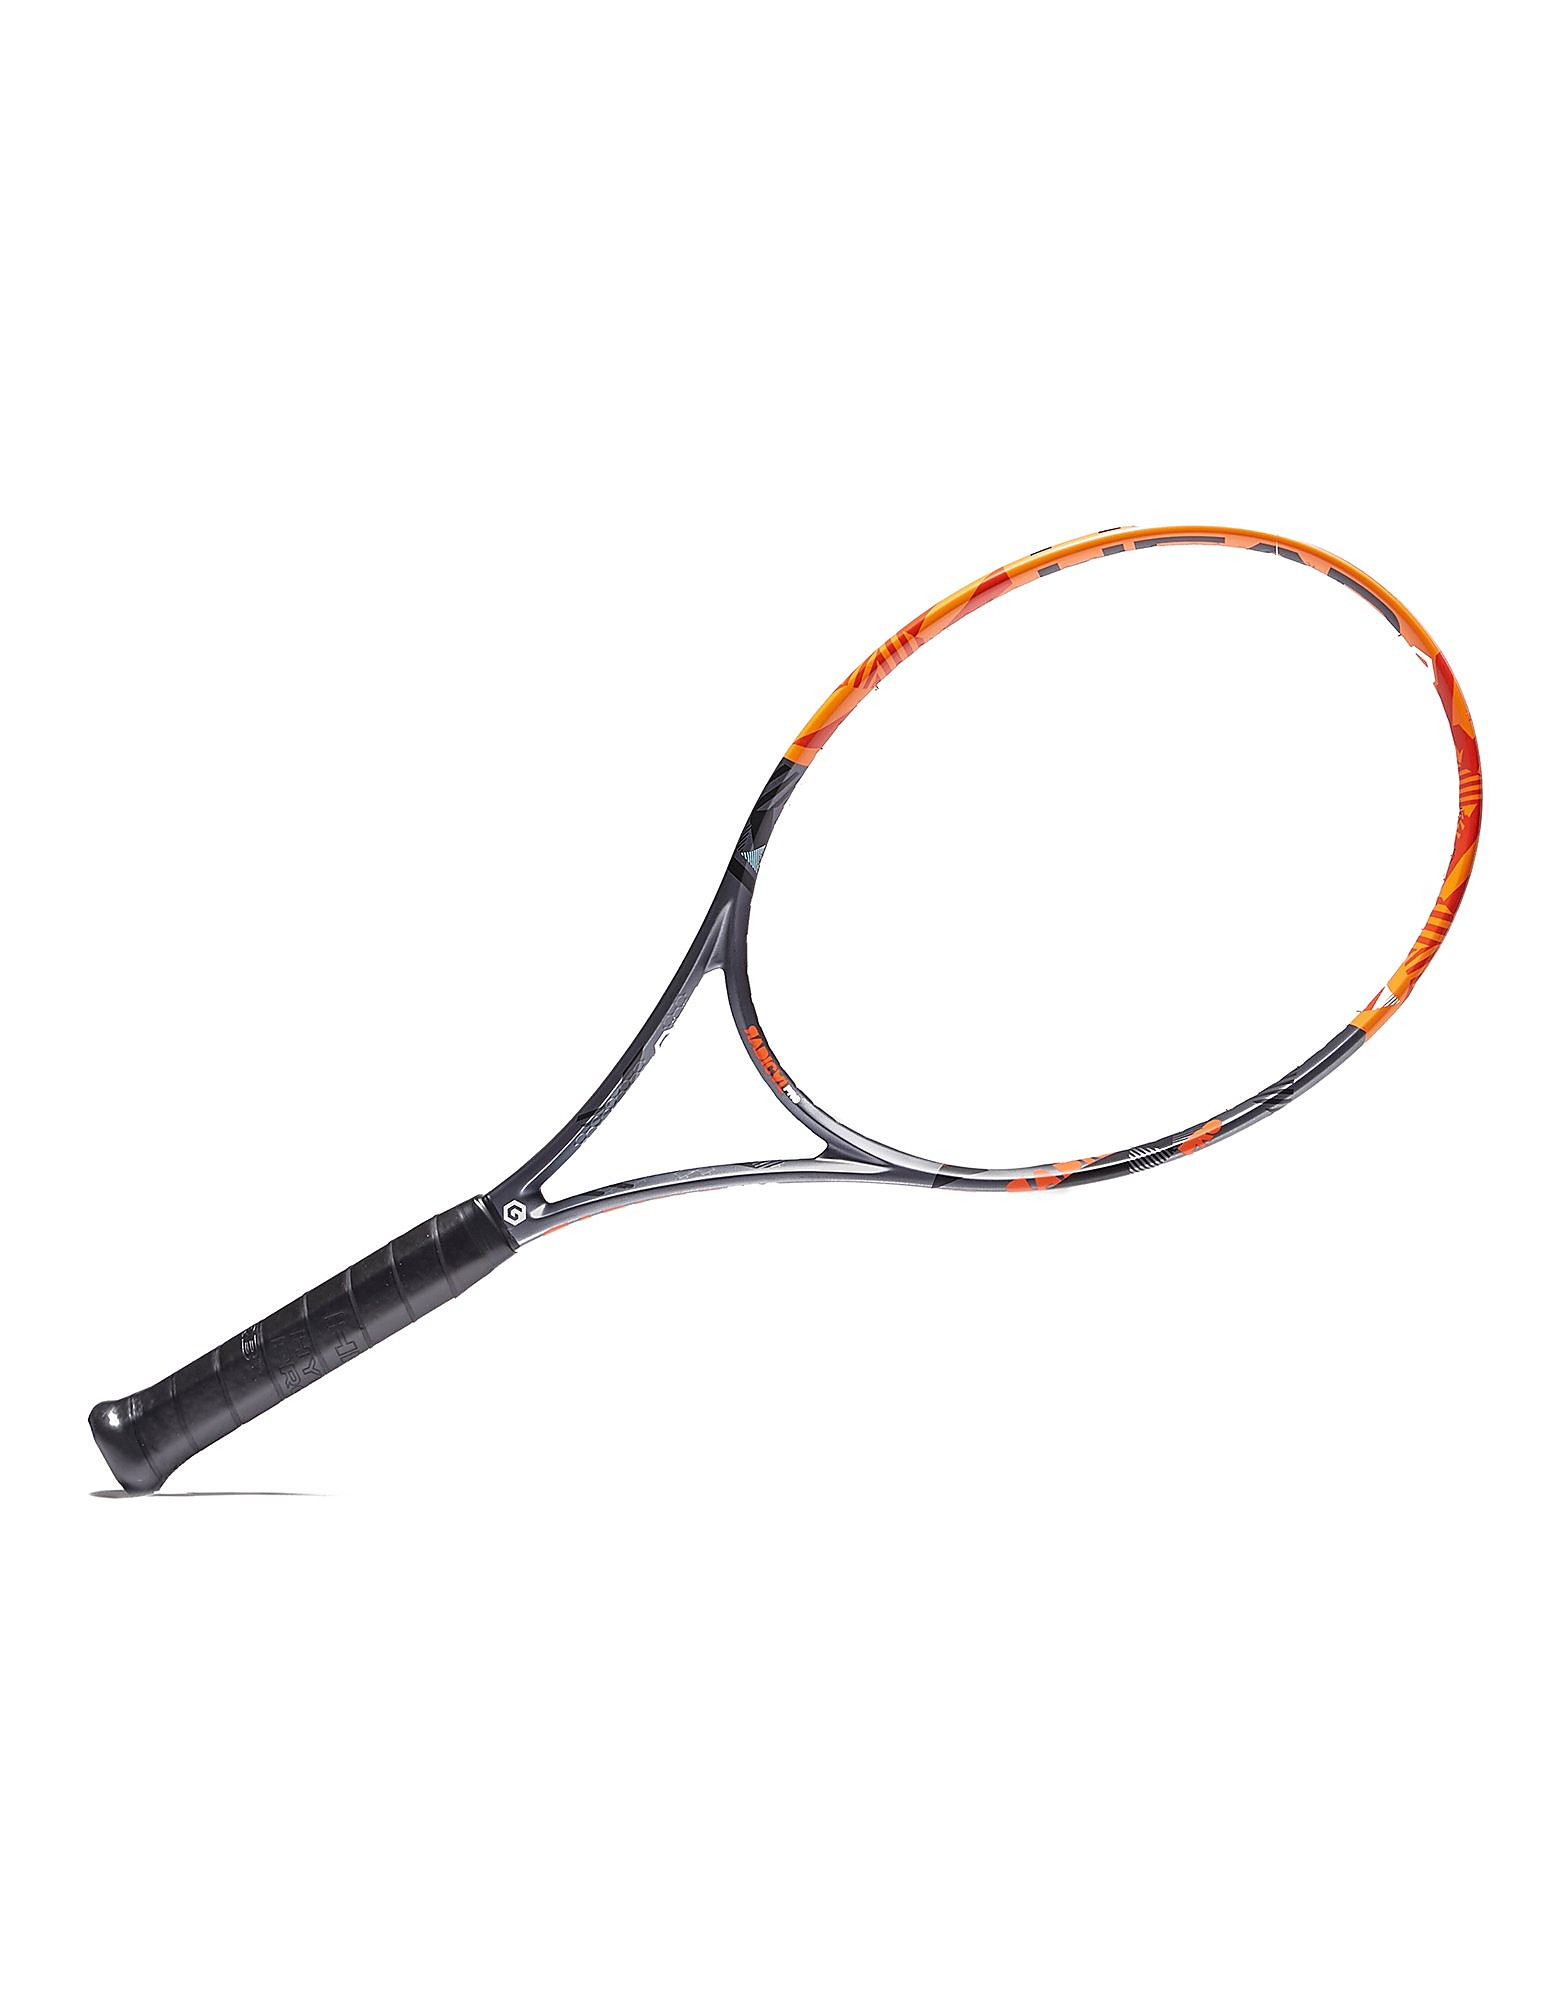 Head Graphene XT Radical Pro Tennis Racket